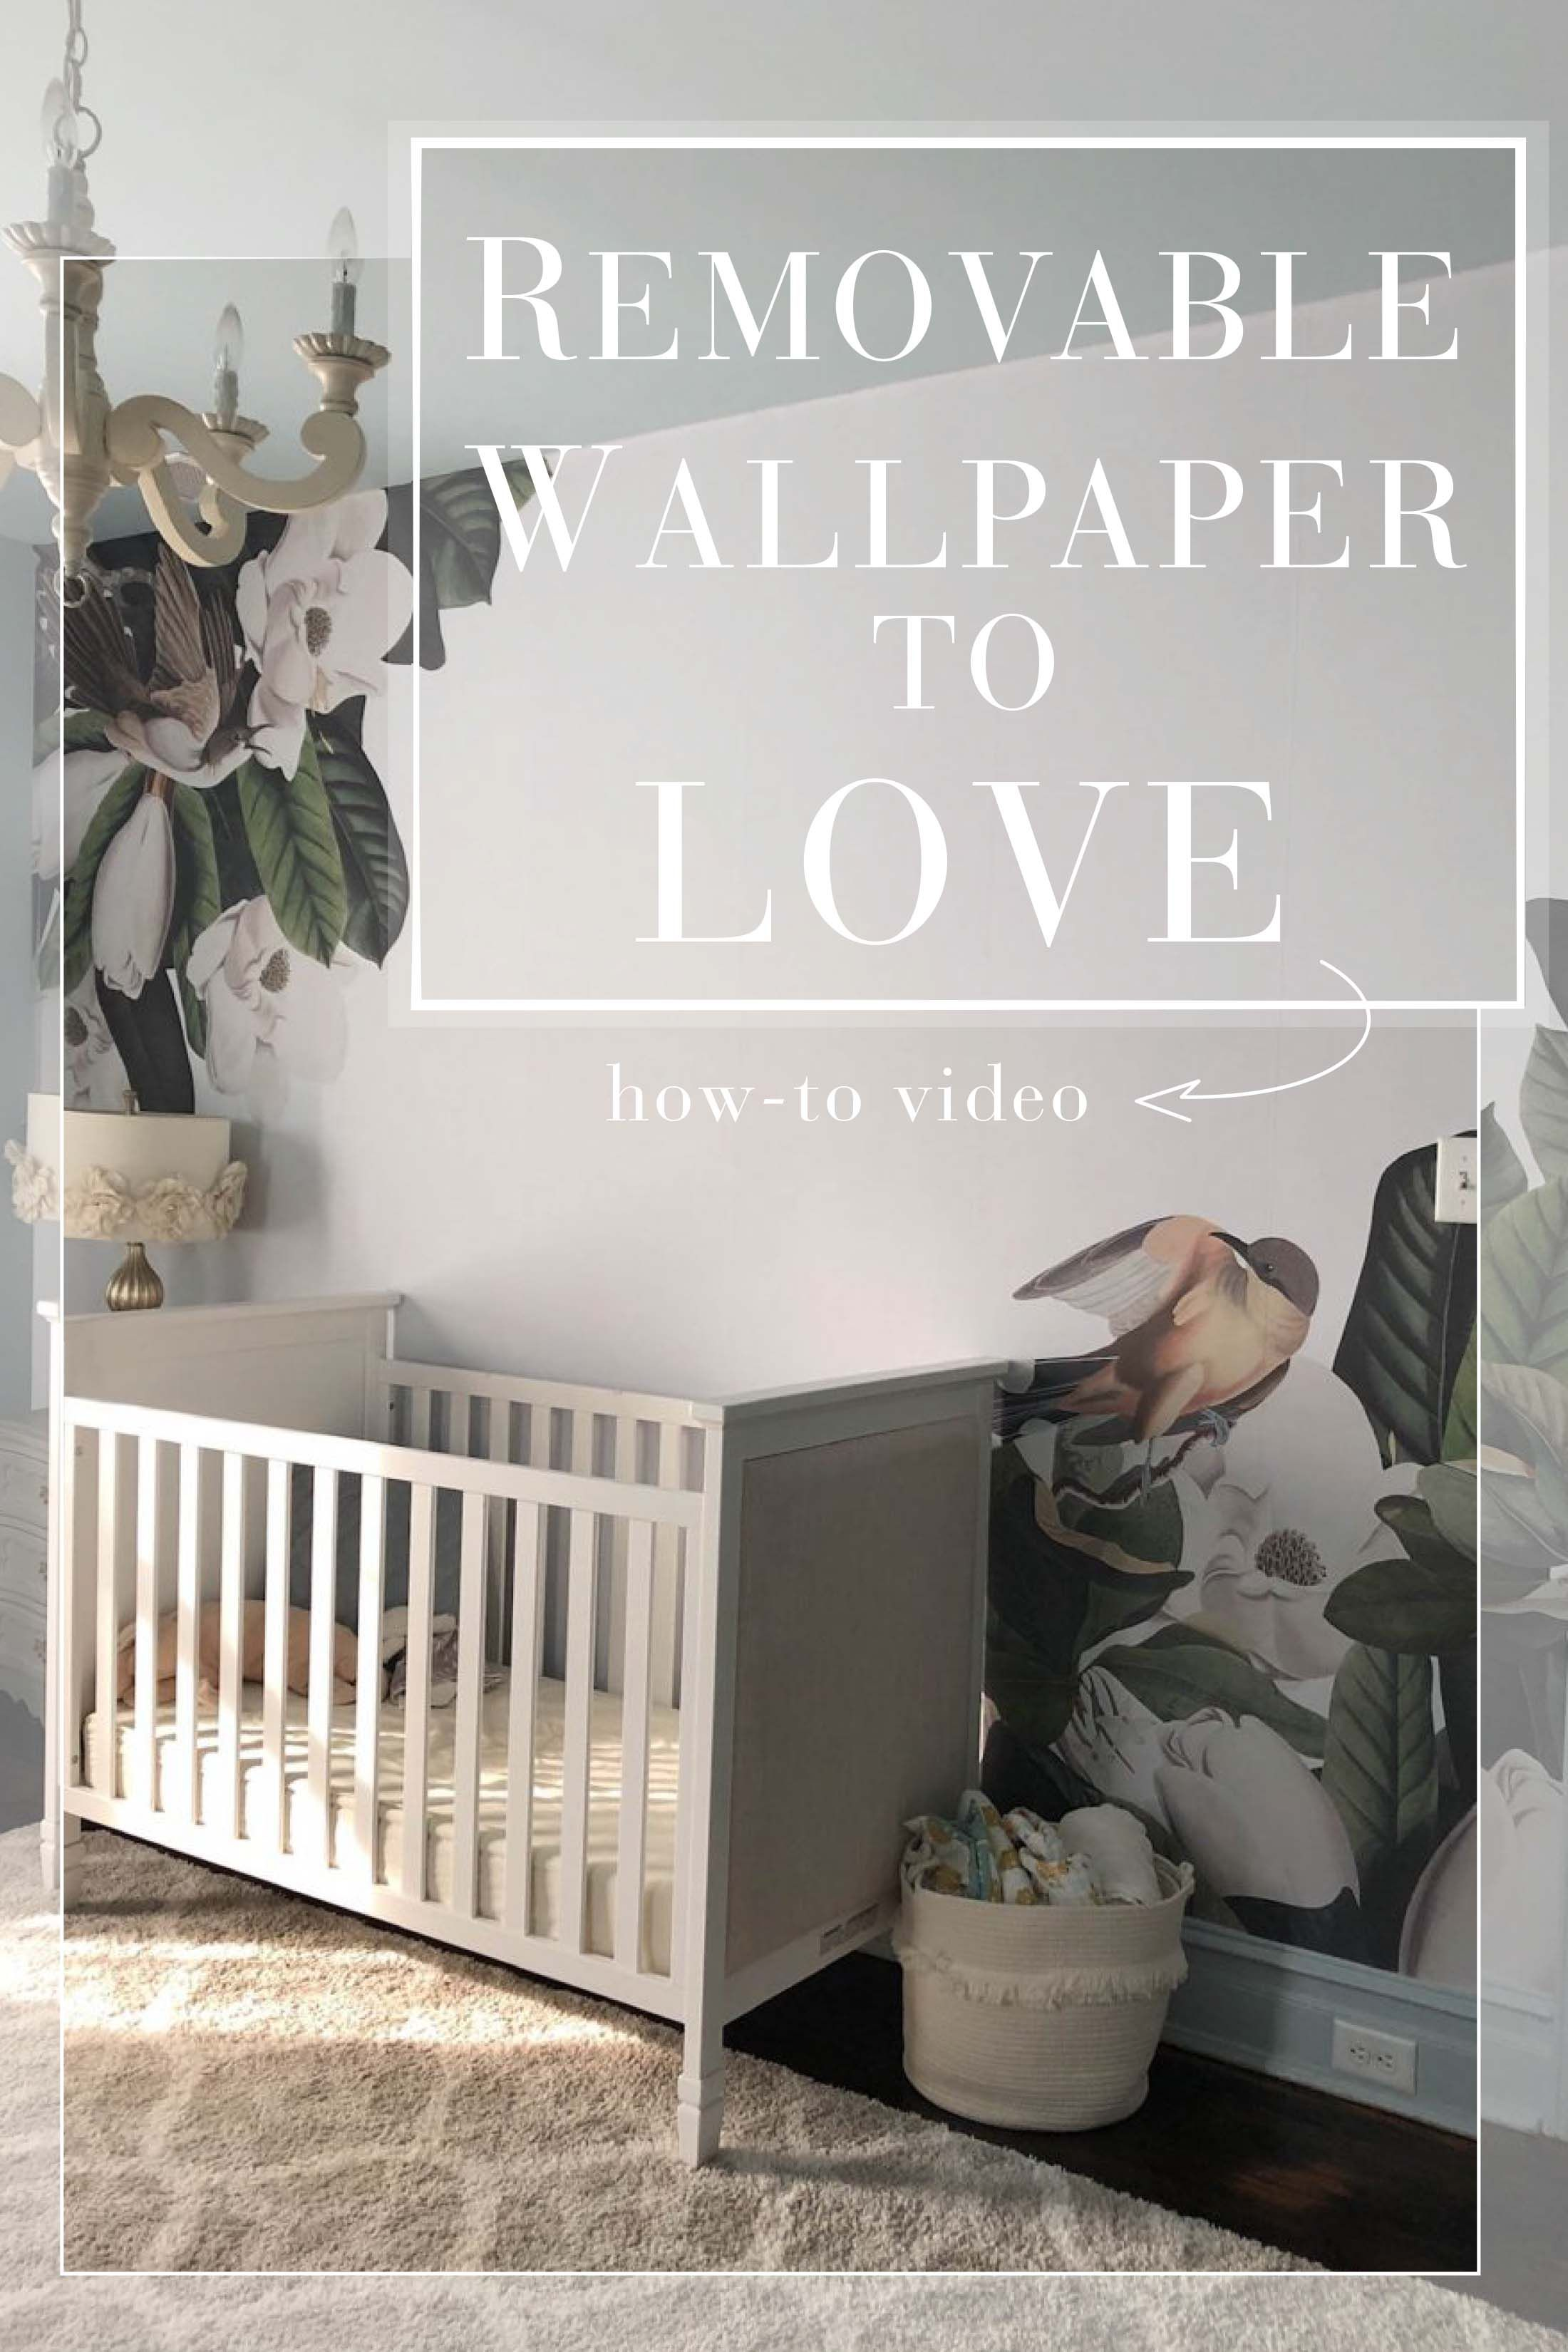 Let S Talk Removable Wallpaper The Peel Stick Florals I M Obsessed With Video How To The Mom Edit Removable Wallpaper Kids Room Wallpaper Diy Wallpaper